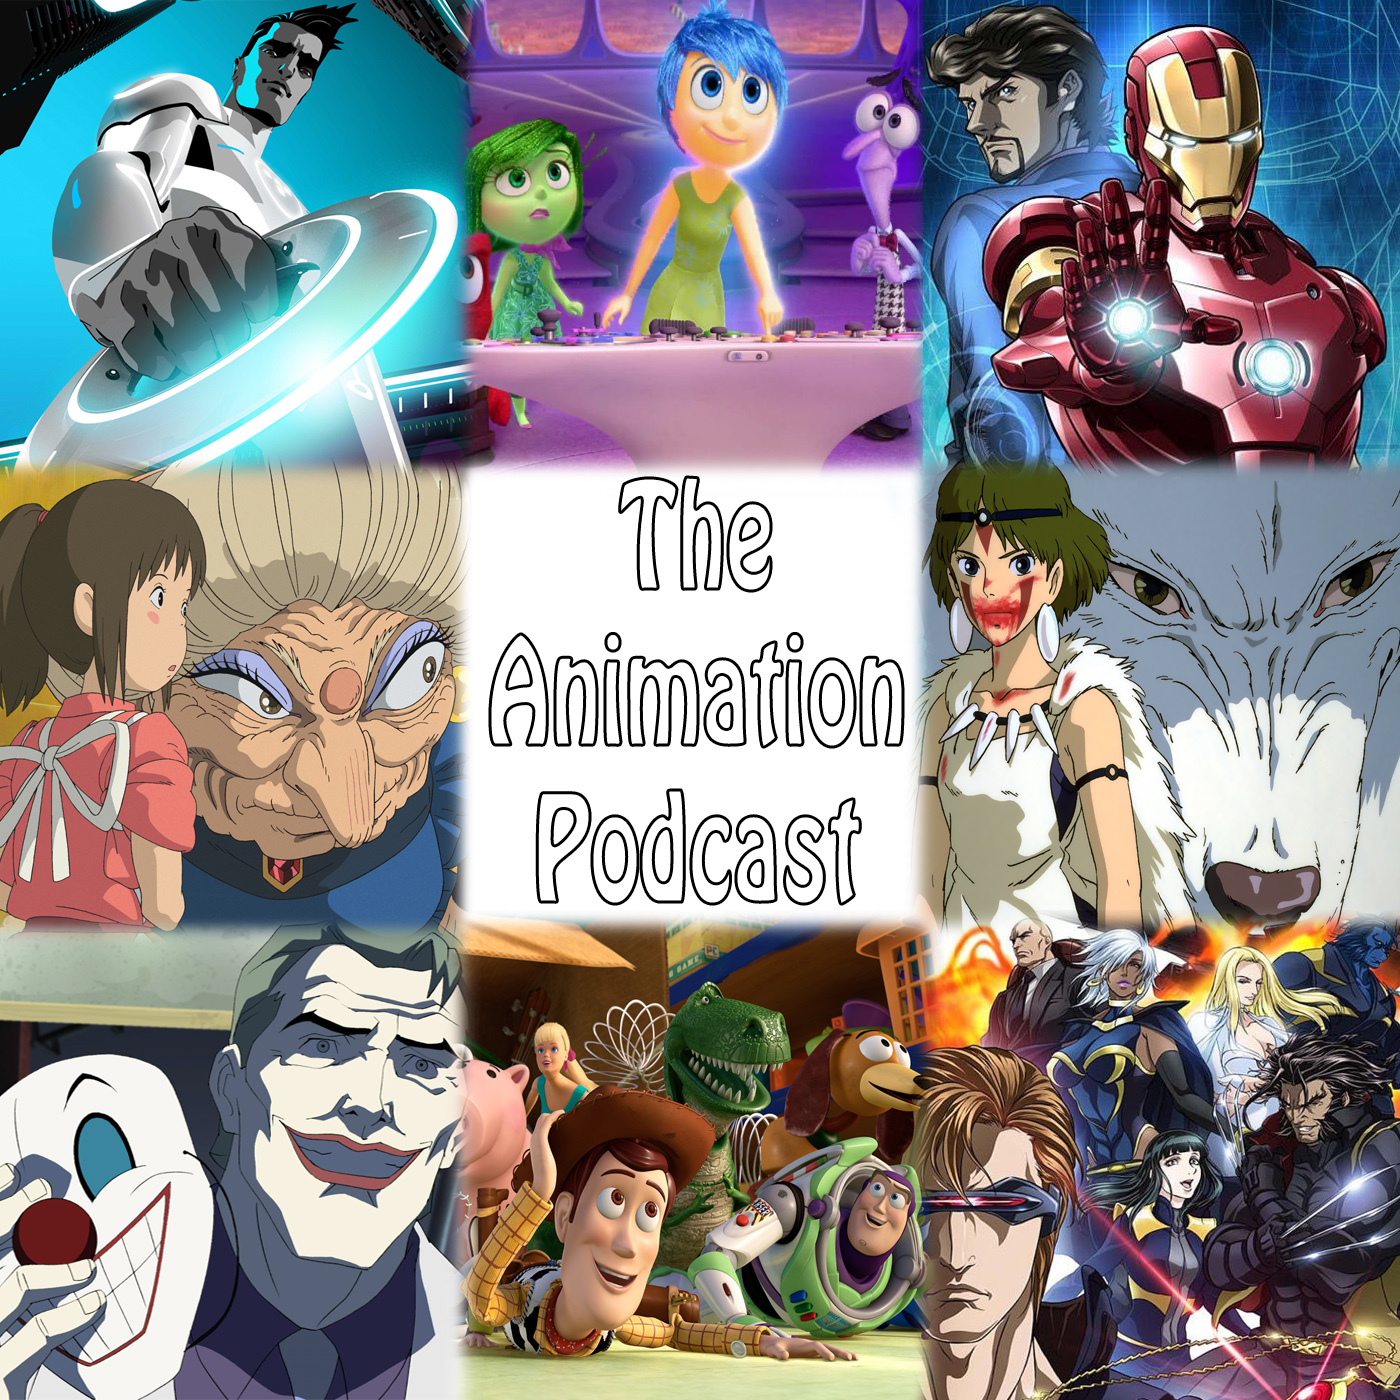 The Animation Podcast